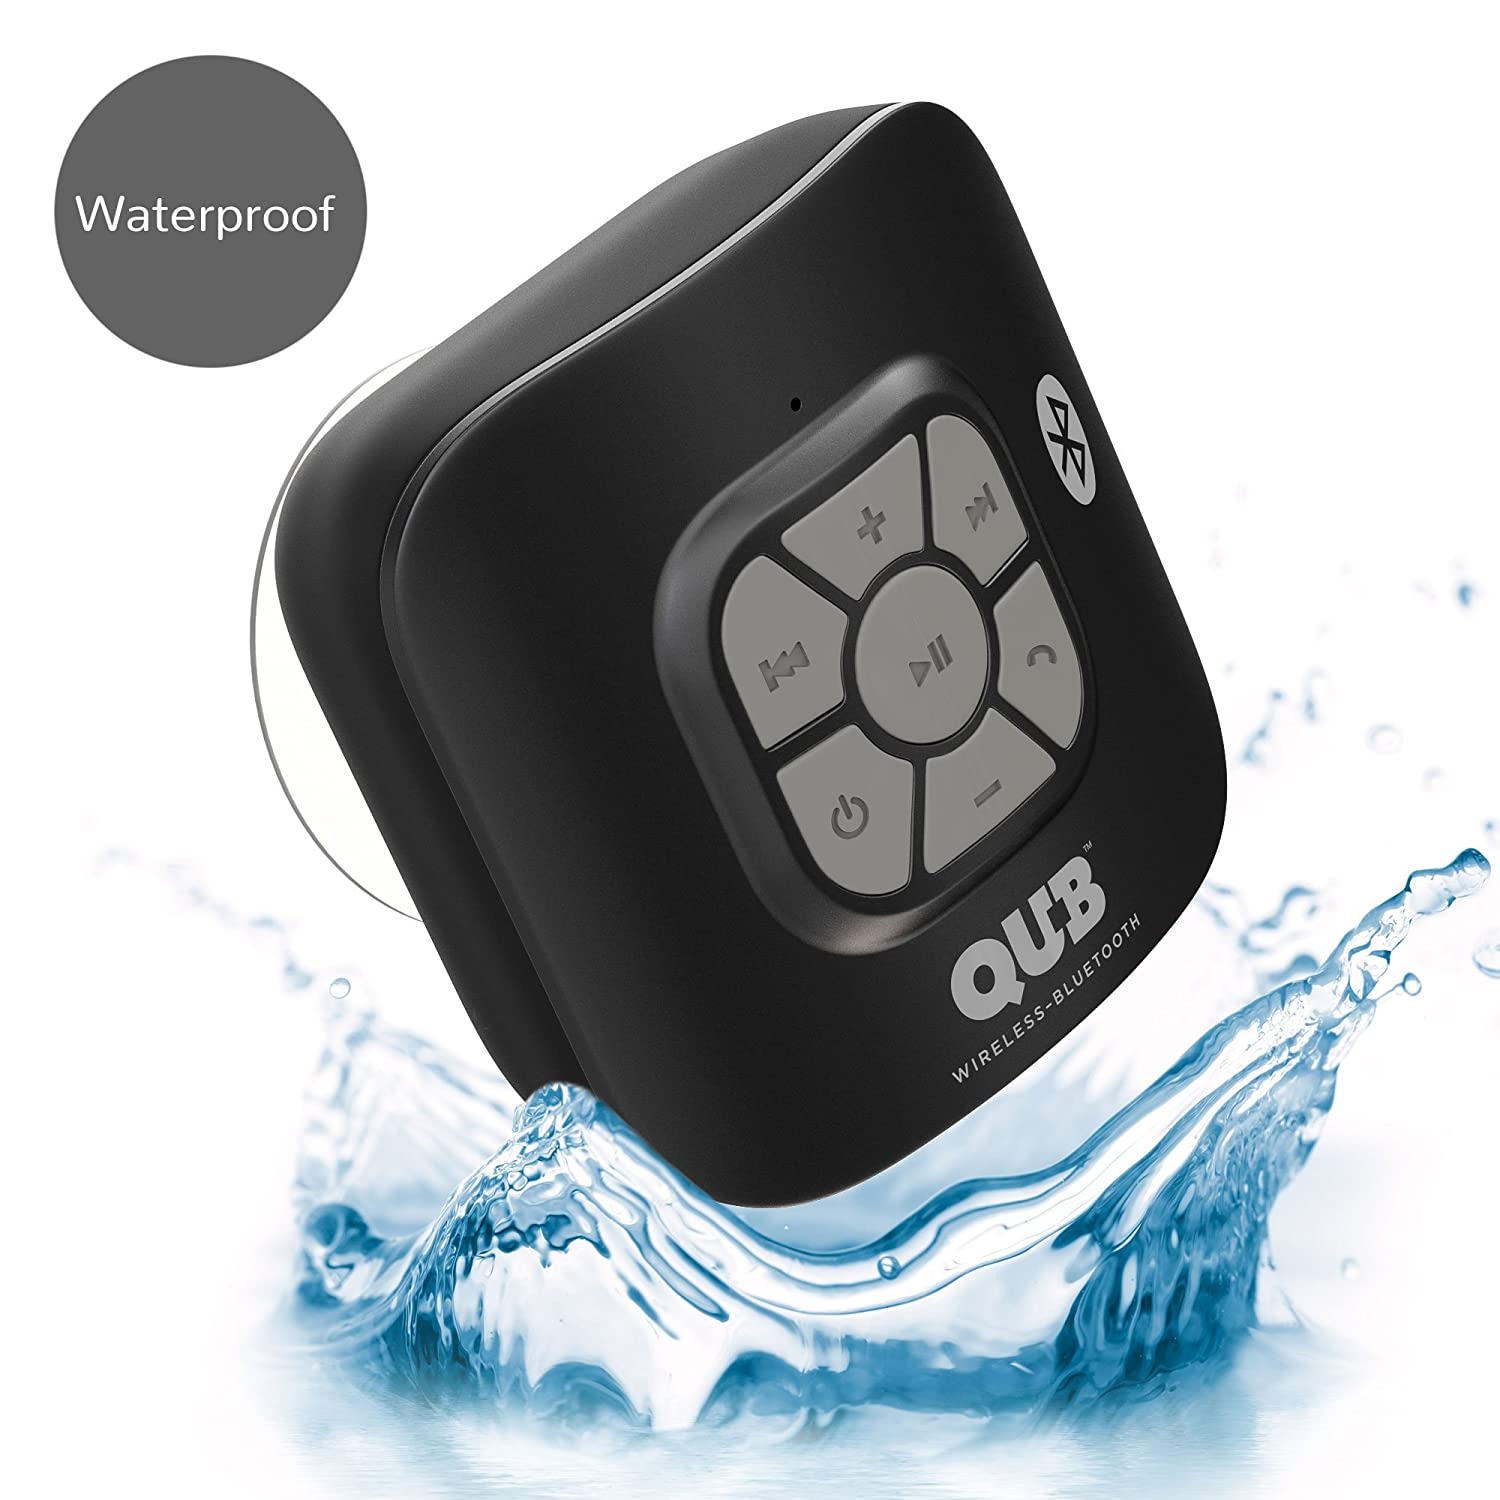 AquaAudio Cubo – Portable Waterproof Bluetooth Speaker